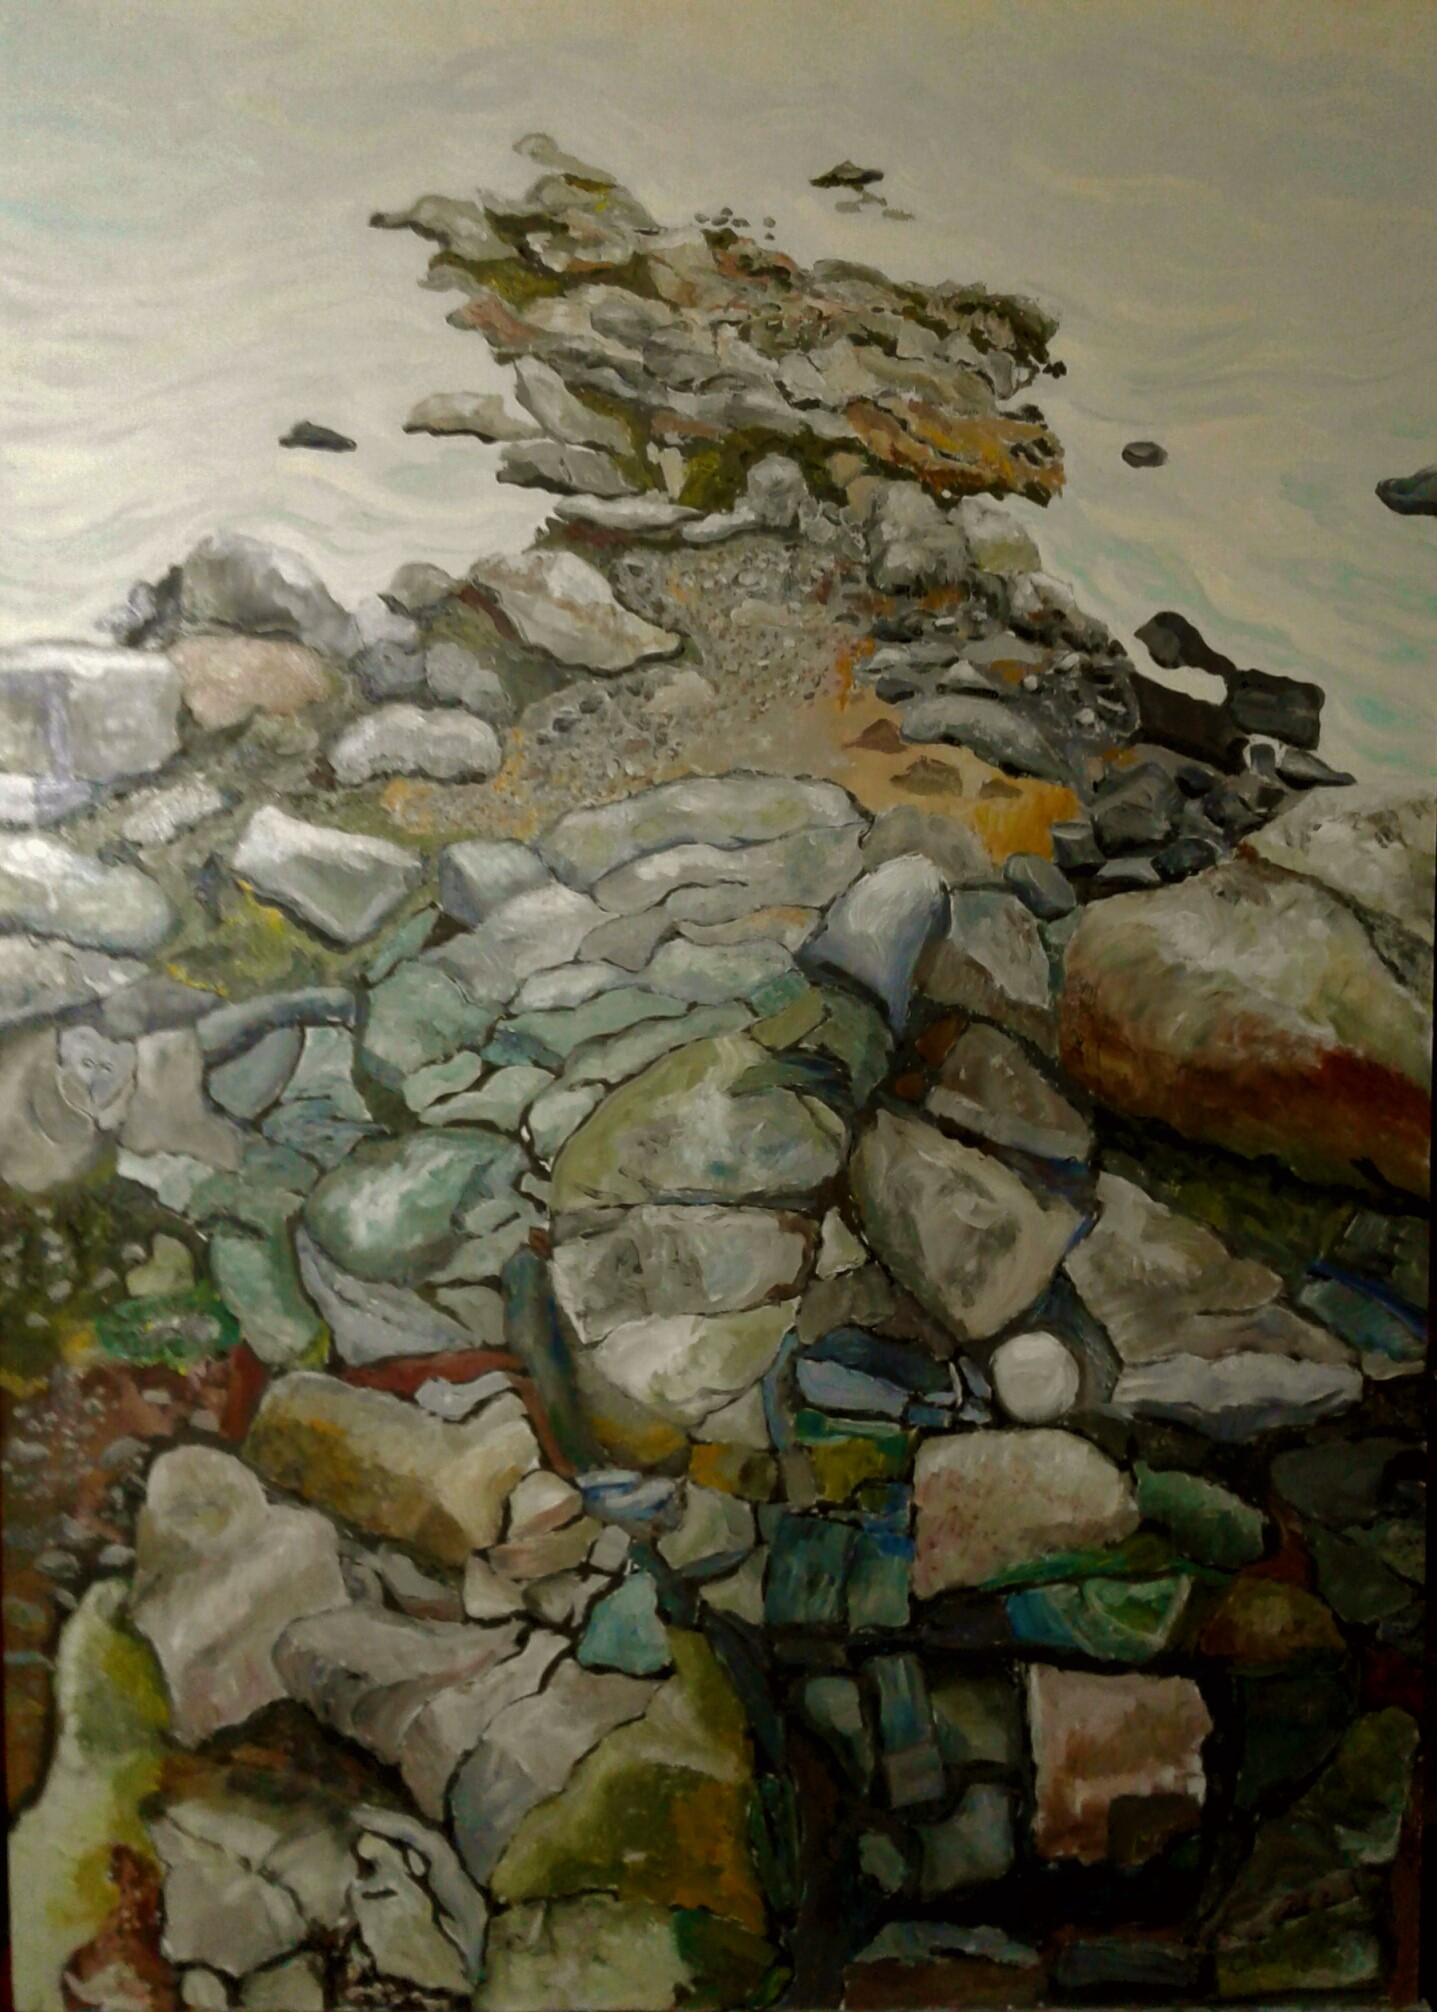 THE SEA CAPTAIN   Water-Soluble oil on board 2018  When painting this I discovered an image of a Sea Captain in the rocks.  I feel it is the presence of one lost at Sea.